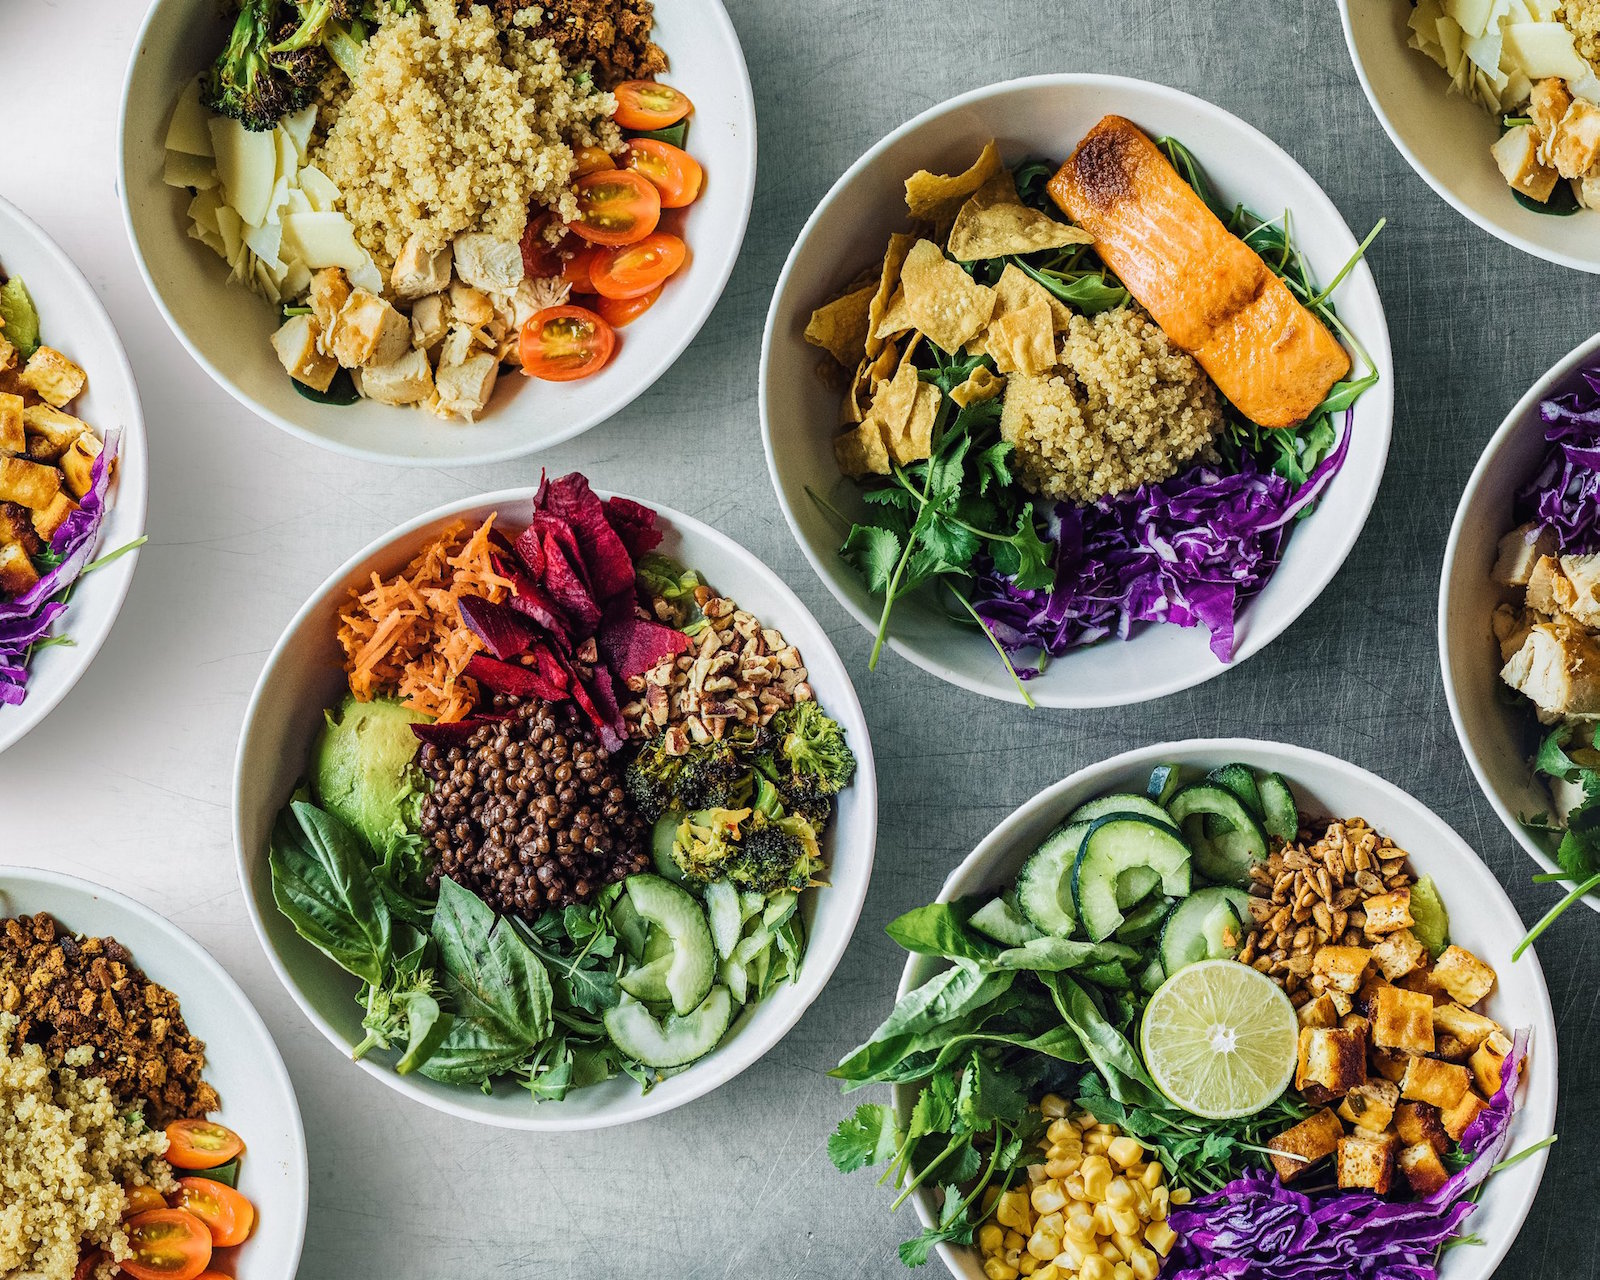 Farmhouse Rules Salad Recipes How To Make A Perfect Salad According To A Sweetgreen Founder